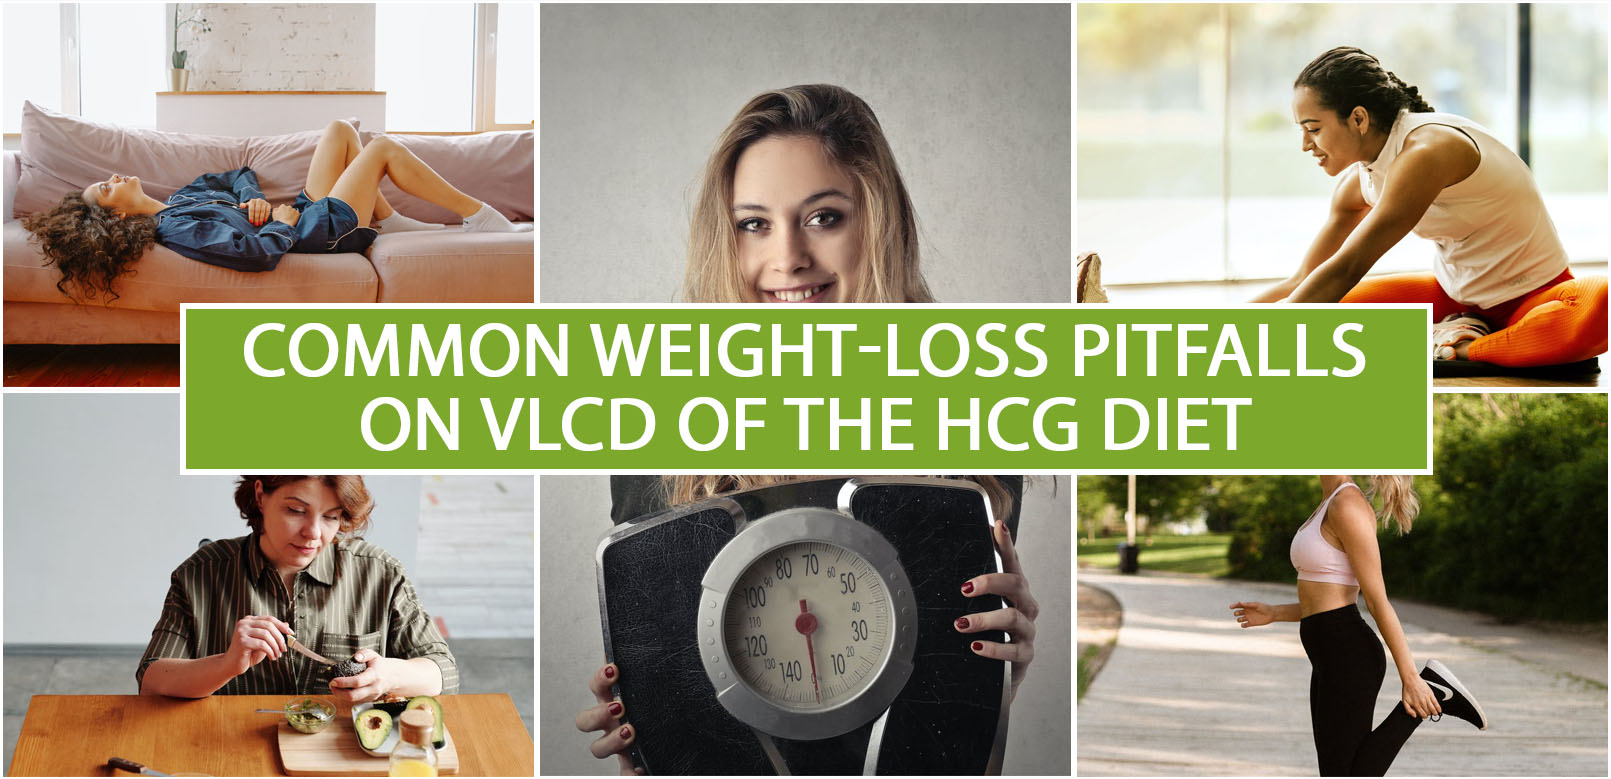 COMMON WEIGHT-LOSS PITFALLS ON VLCD OF THE HCG DIET